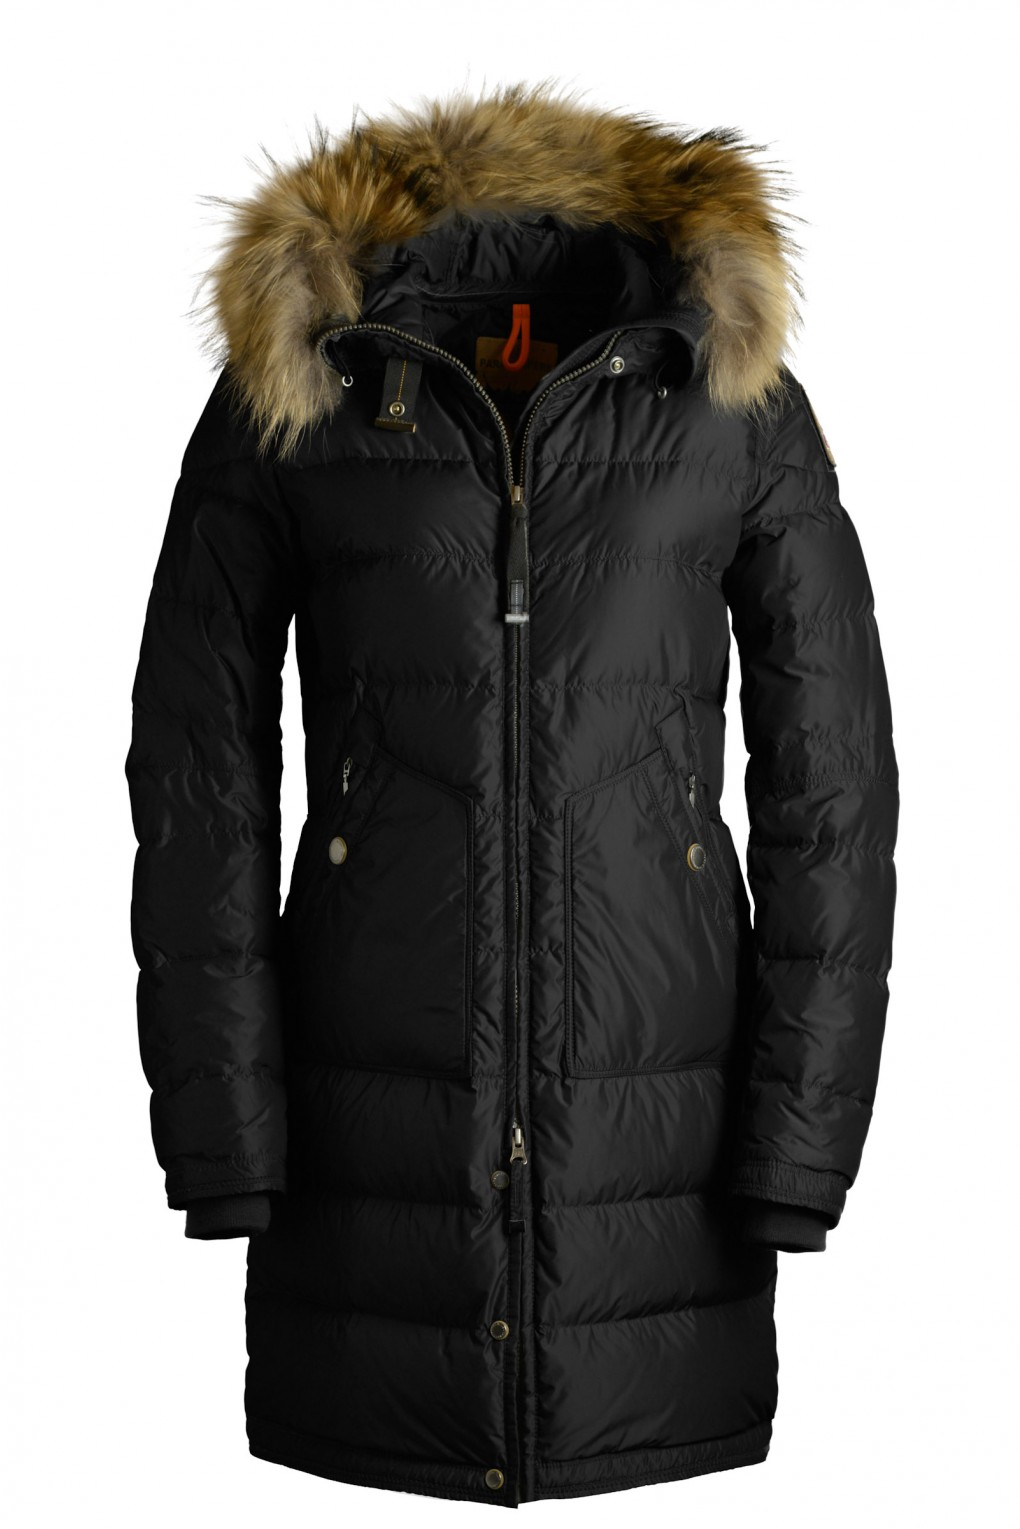 parajumpers LIGHT LONG BEAR woman outerwear Black